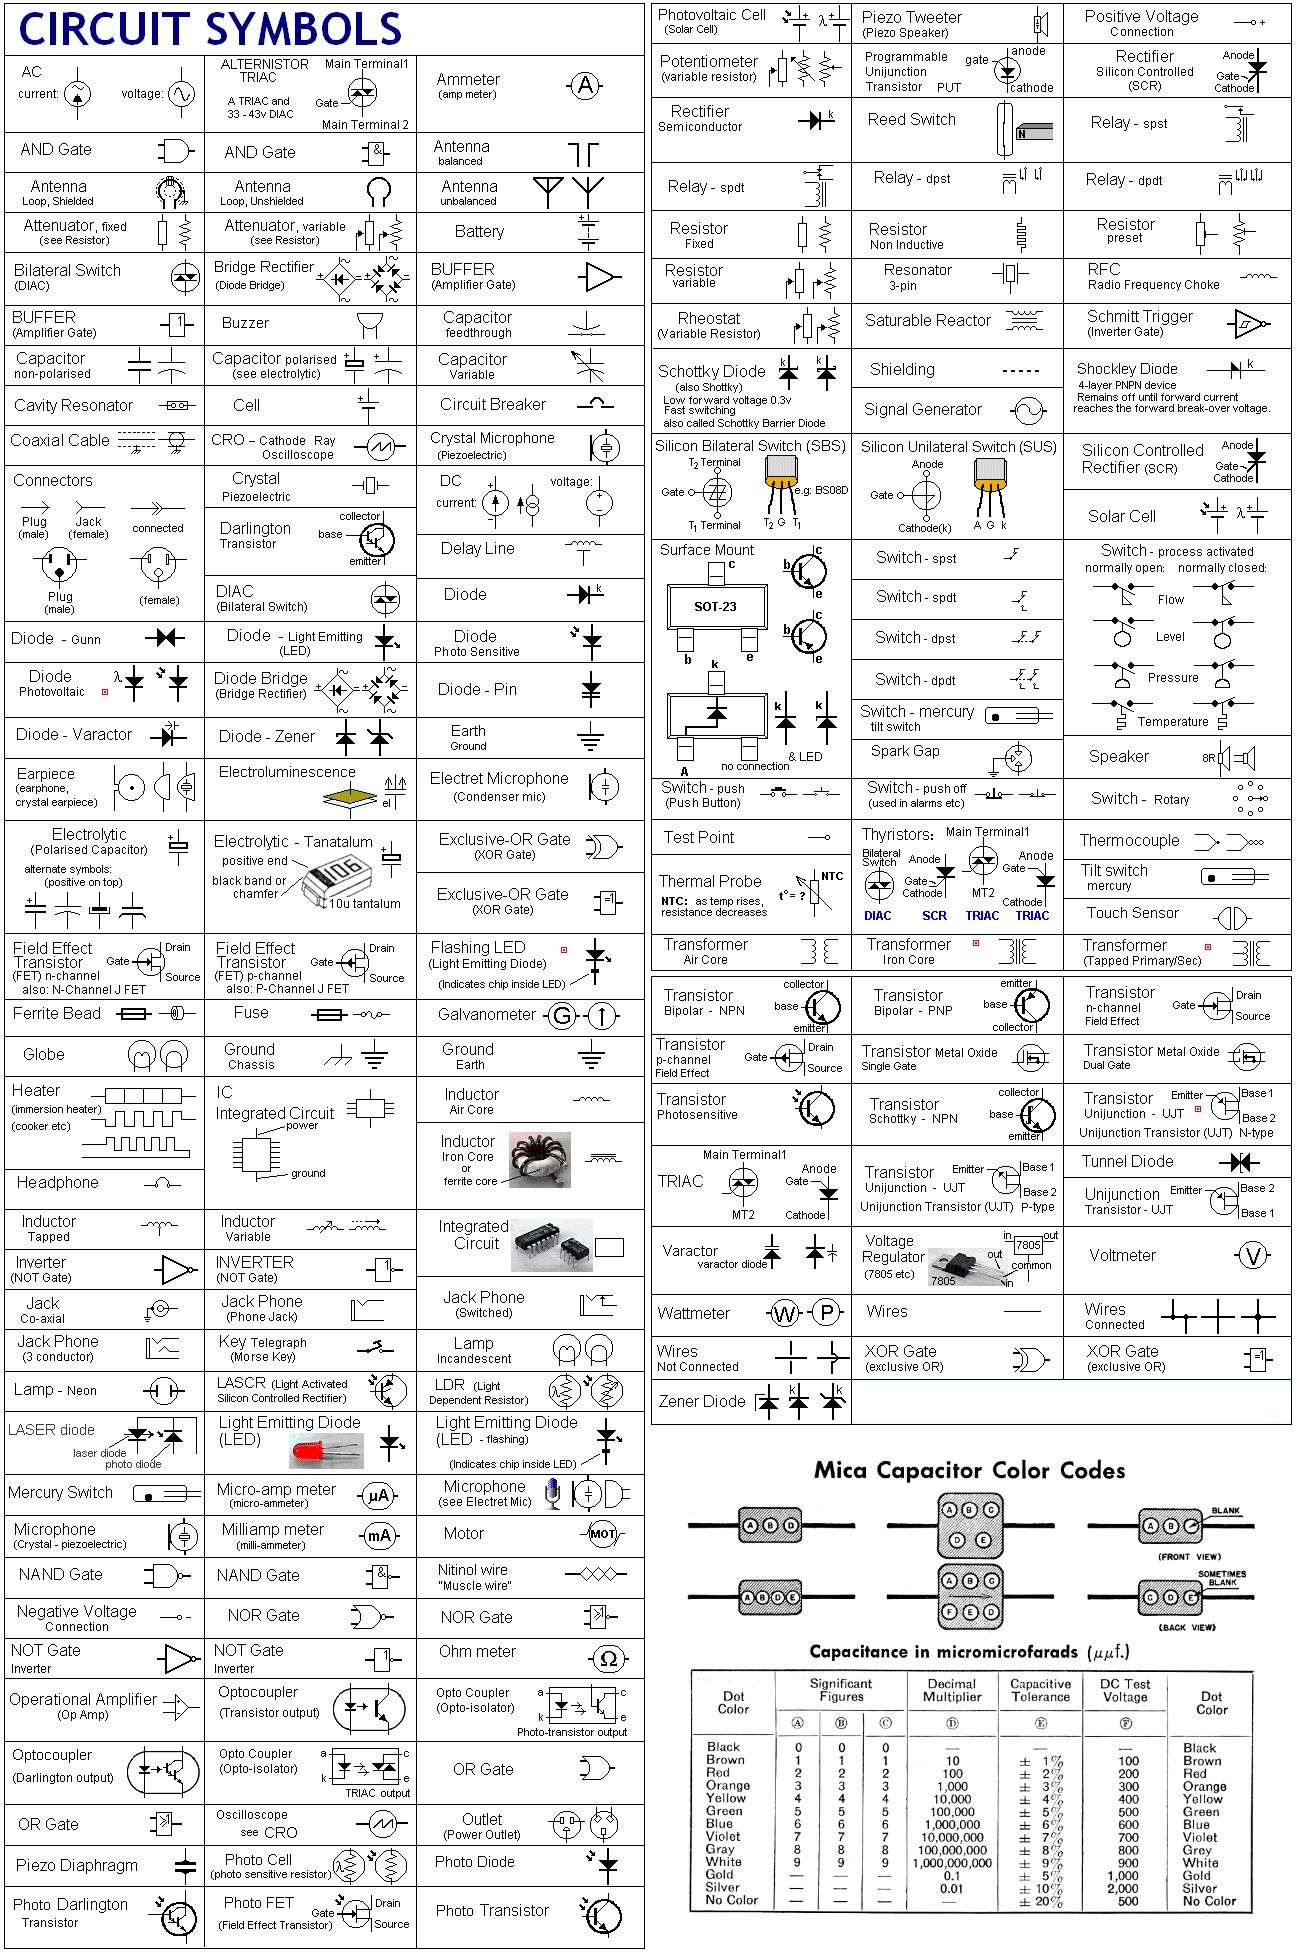 6c64fb84c8e162b28334051891c290f4 schematic symbols chart electric circuit symbols a considerably Electrical Schematic Symbols at bakdesigns.co